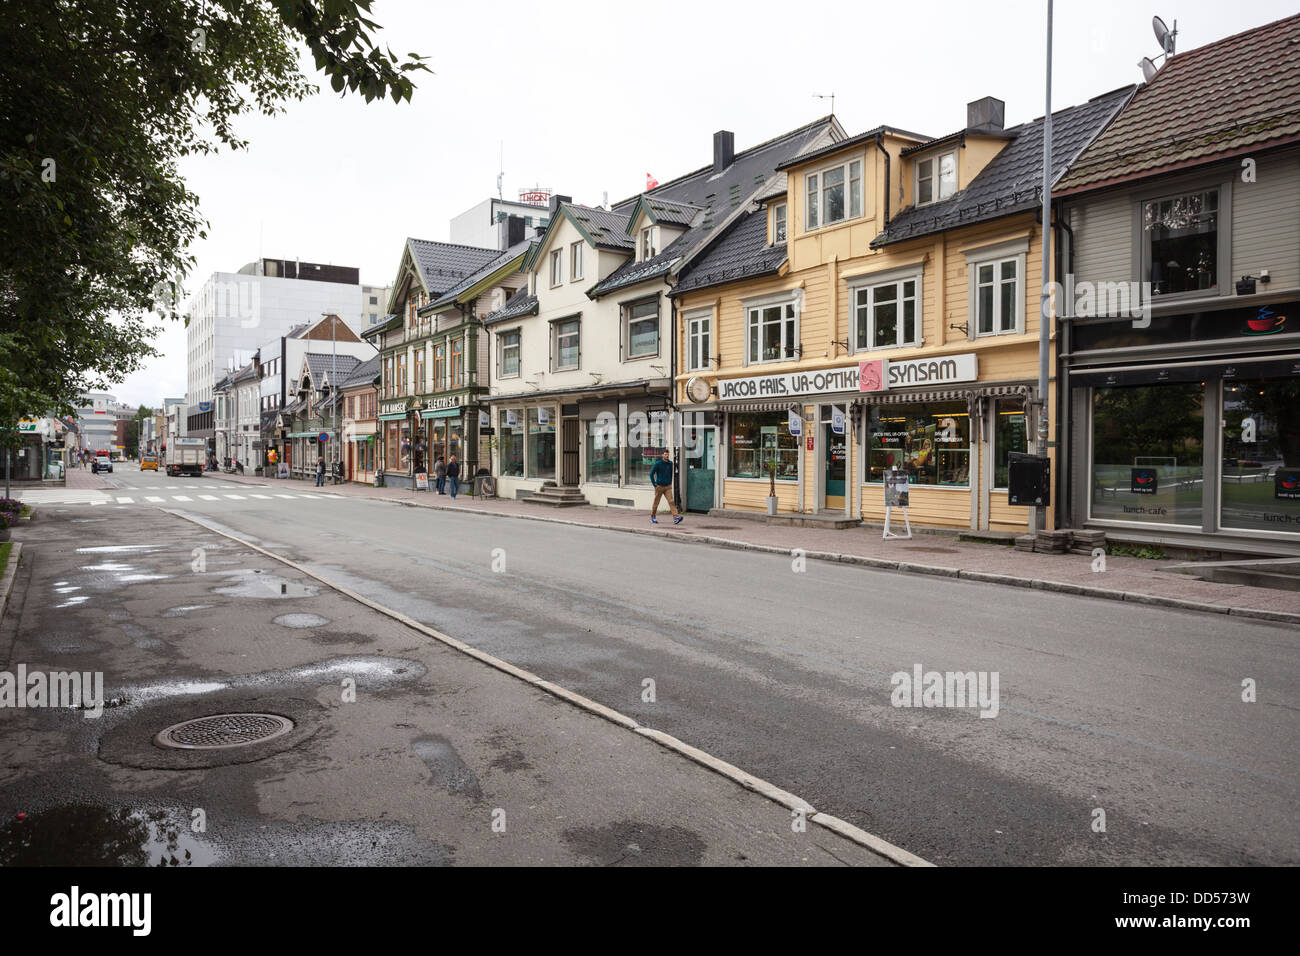 Street view from Tromso city center with old wooden houses - Stock Image